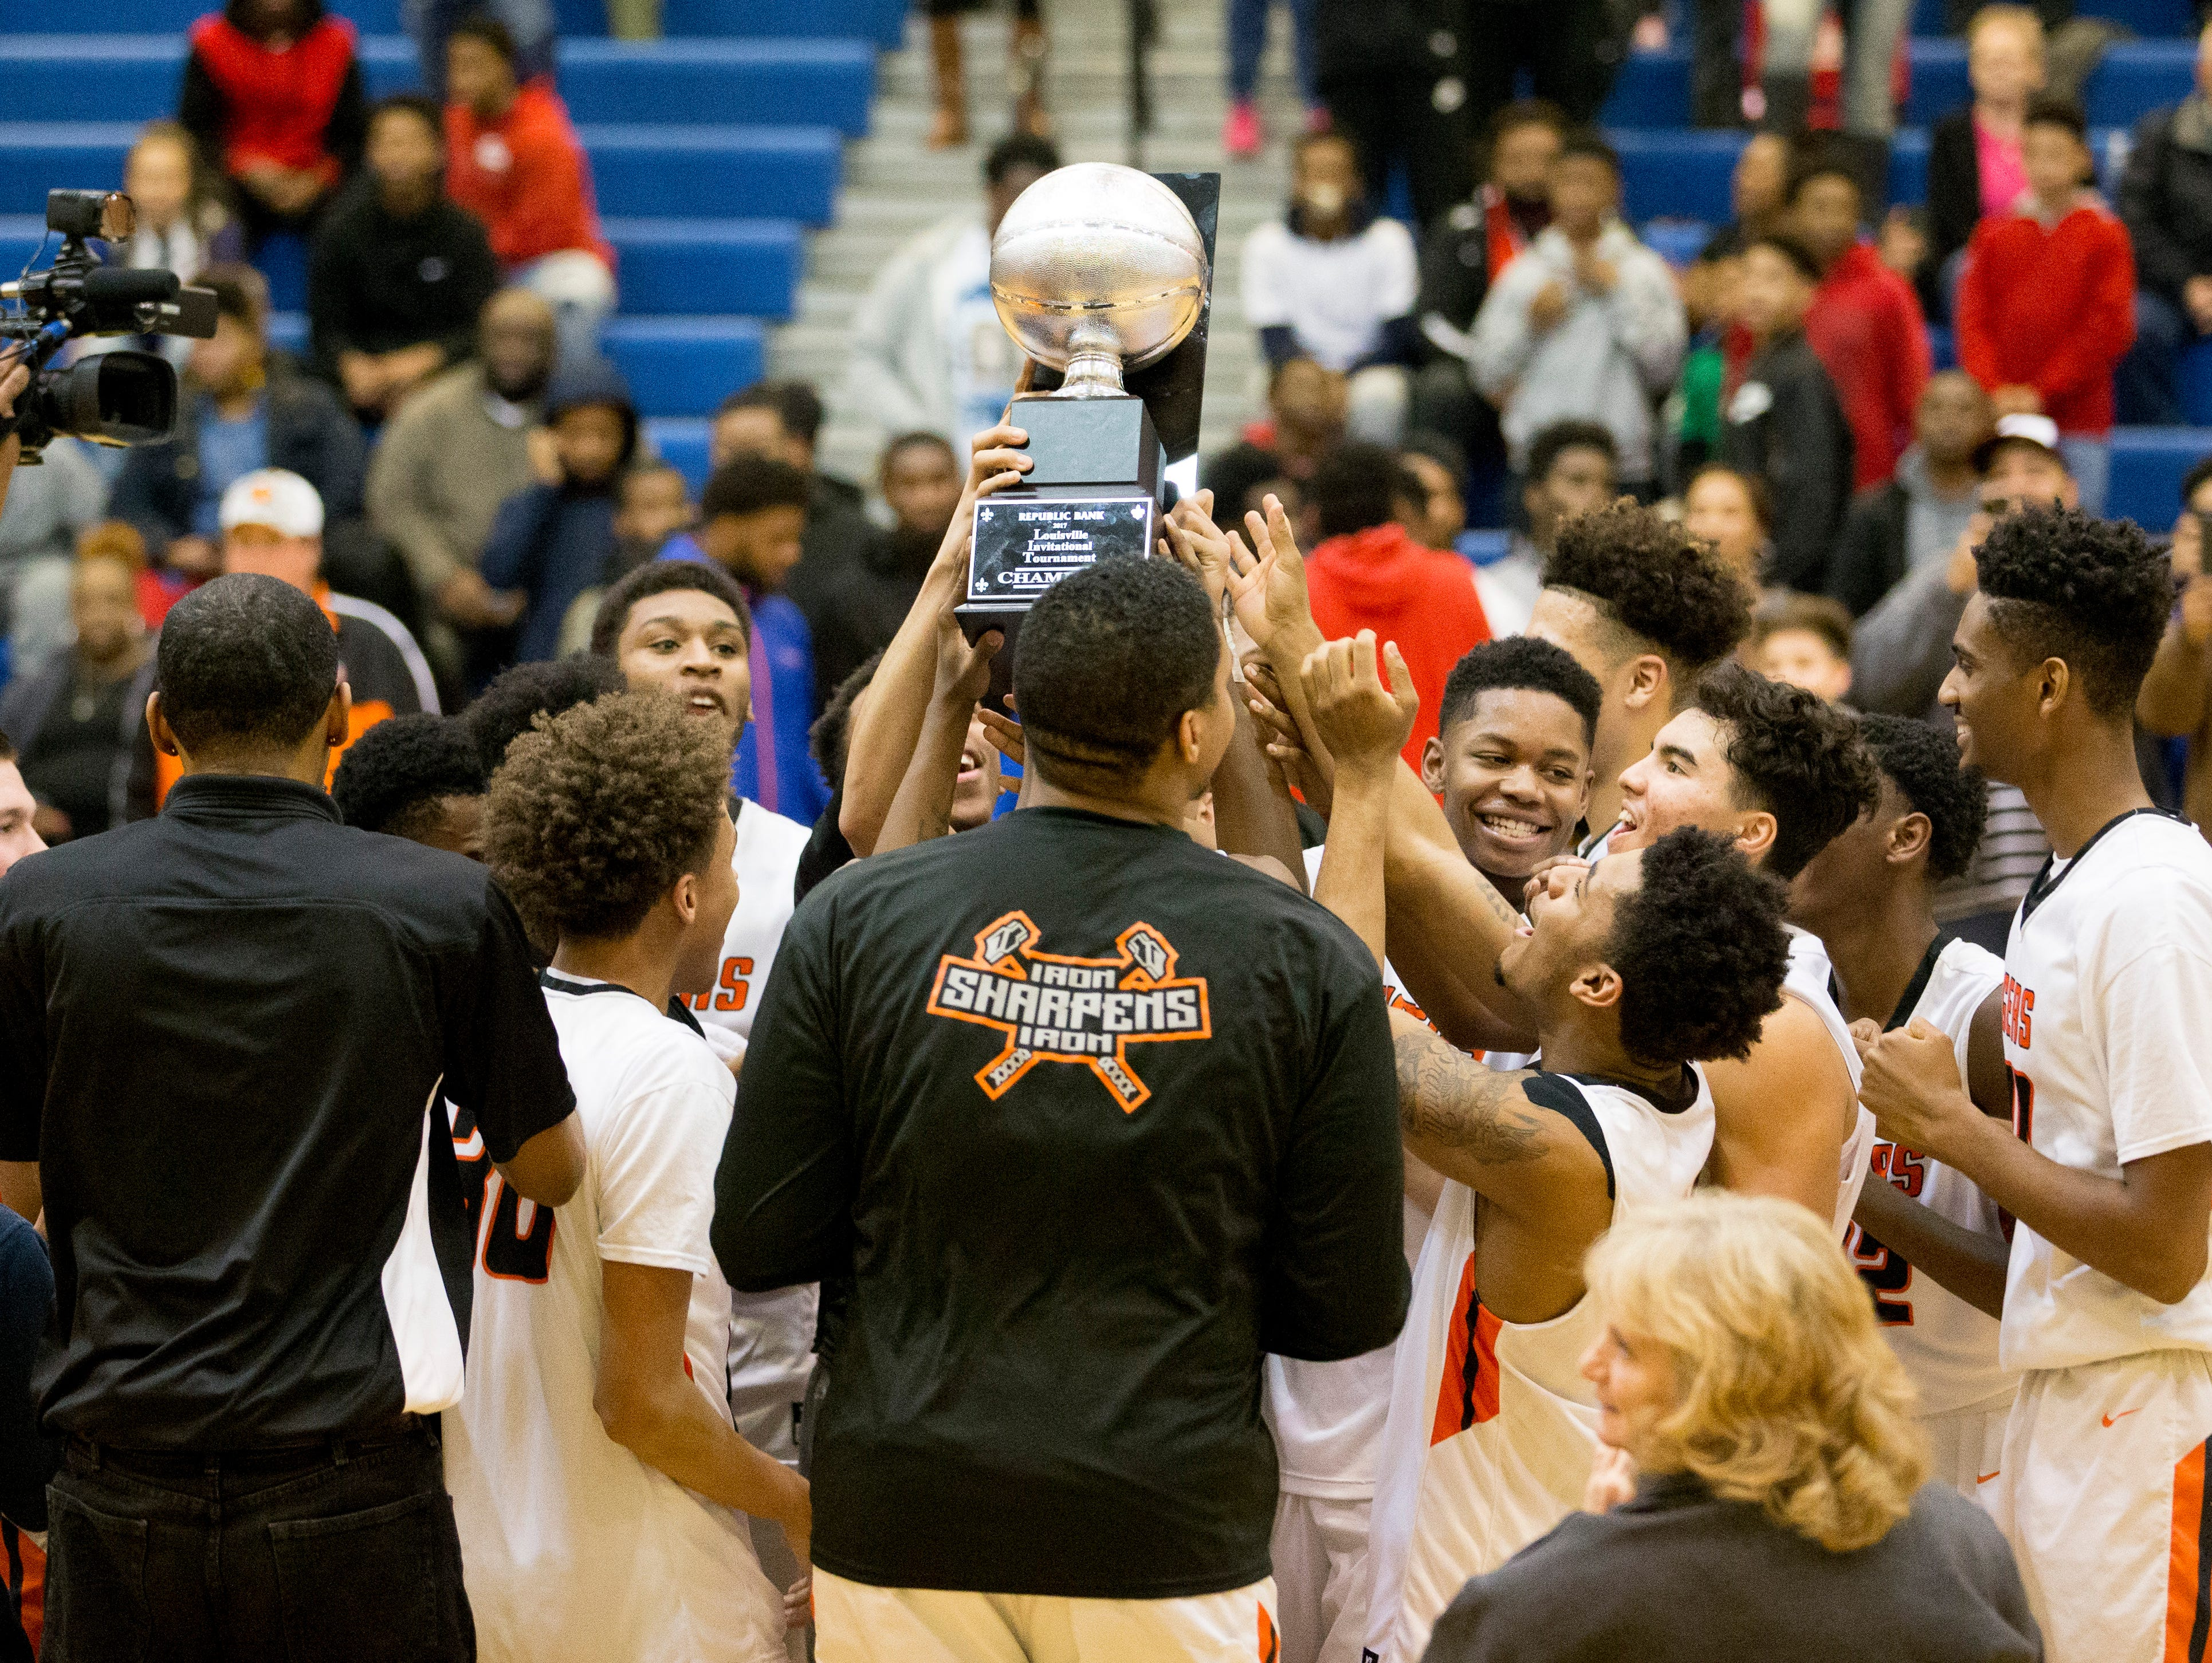 Members of the Fern Creek Tigers basketball team hoist the trophy after winning the championship game of the Louisville Invitational Tournament between the Fern Creek Tigers and the Trinity Shamrocks.